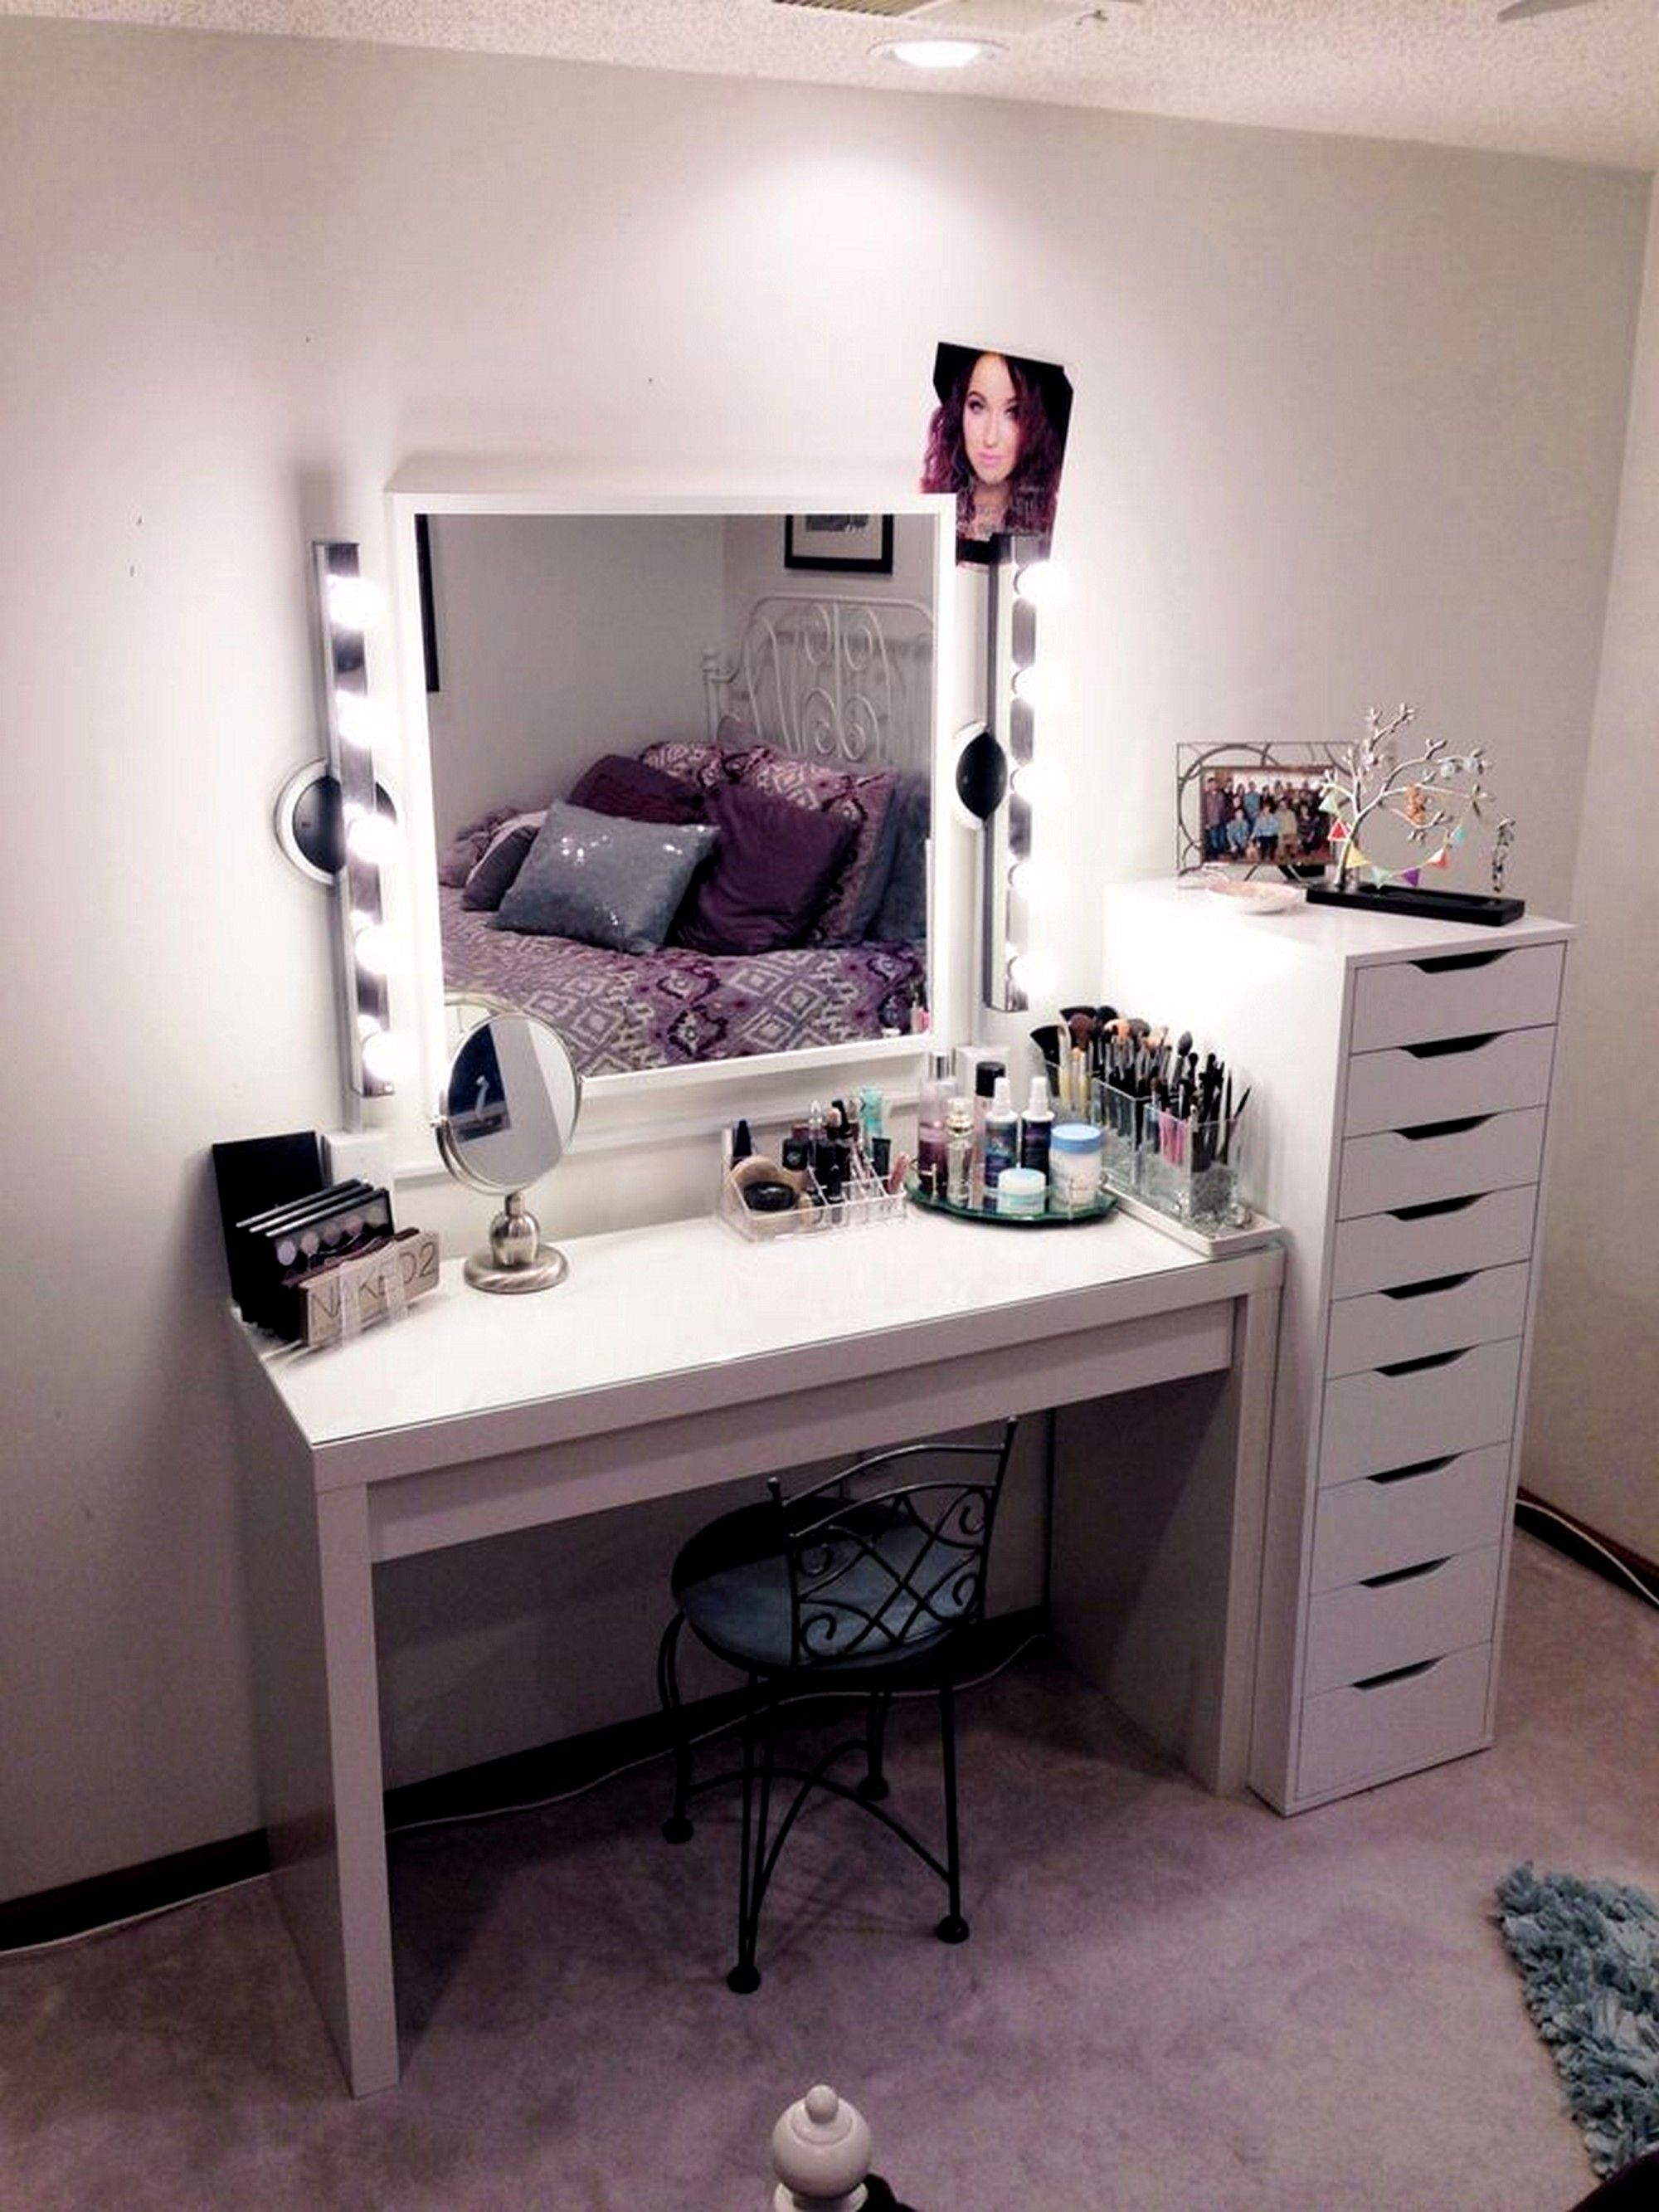 Furniture Ikea Vanity Makeup Table With Lights And Drawers Show Perfect Beauty In Maximum Way By Using Makeup Vanity Ta Beauty Raum Frisiertisch Schminktisch